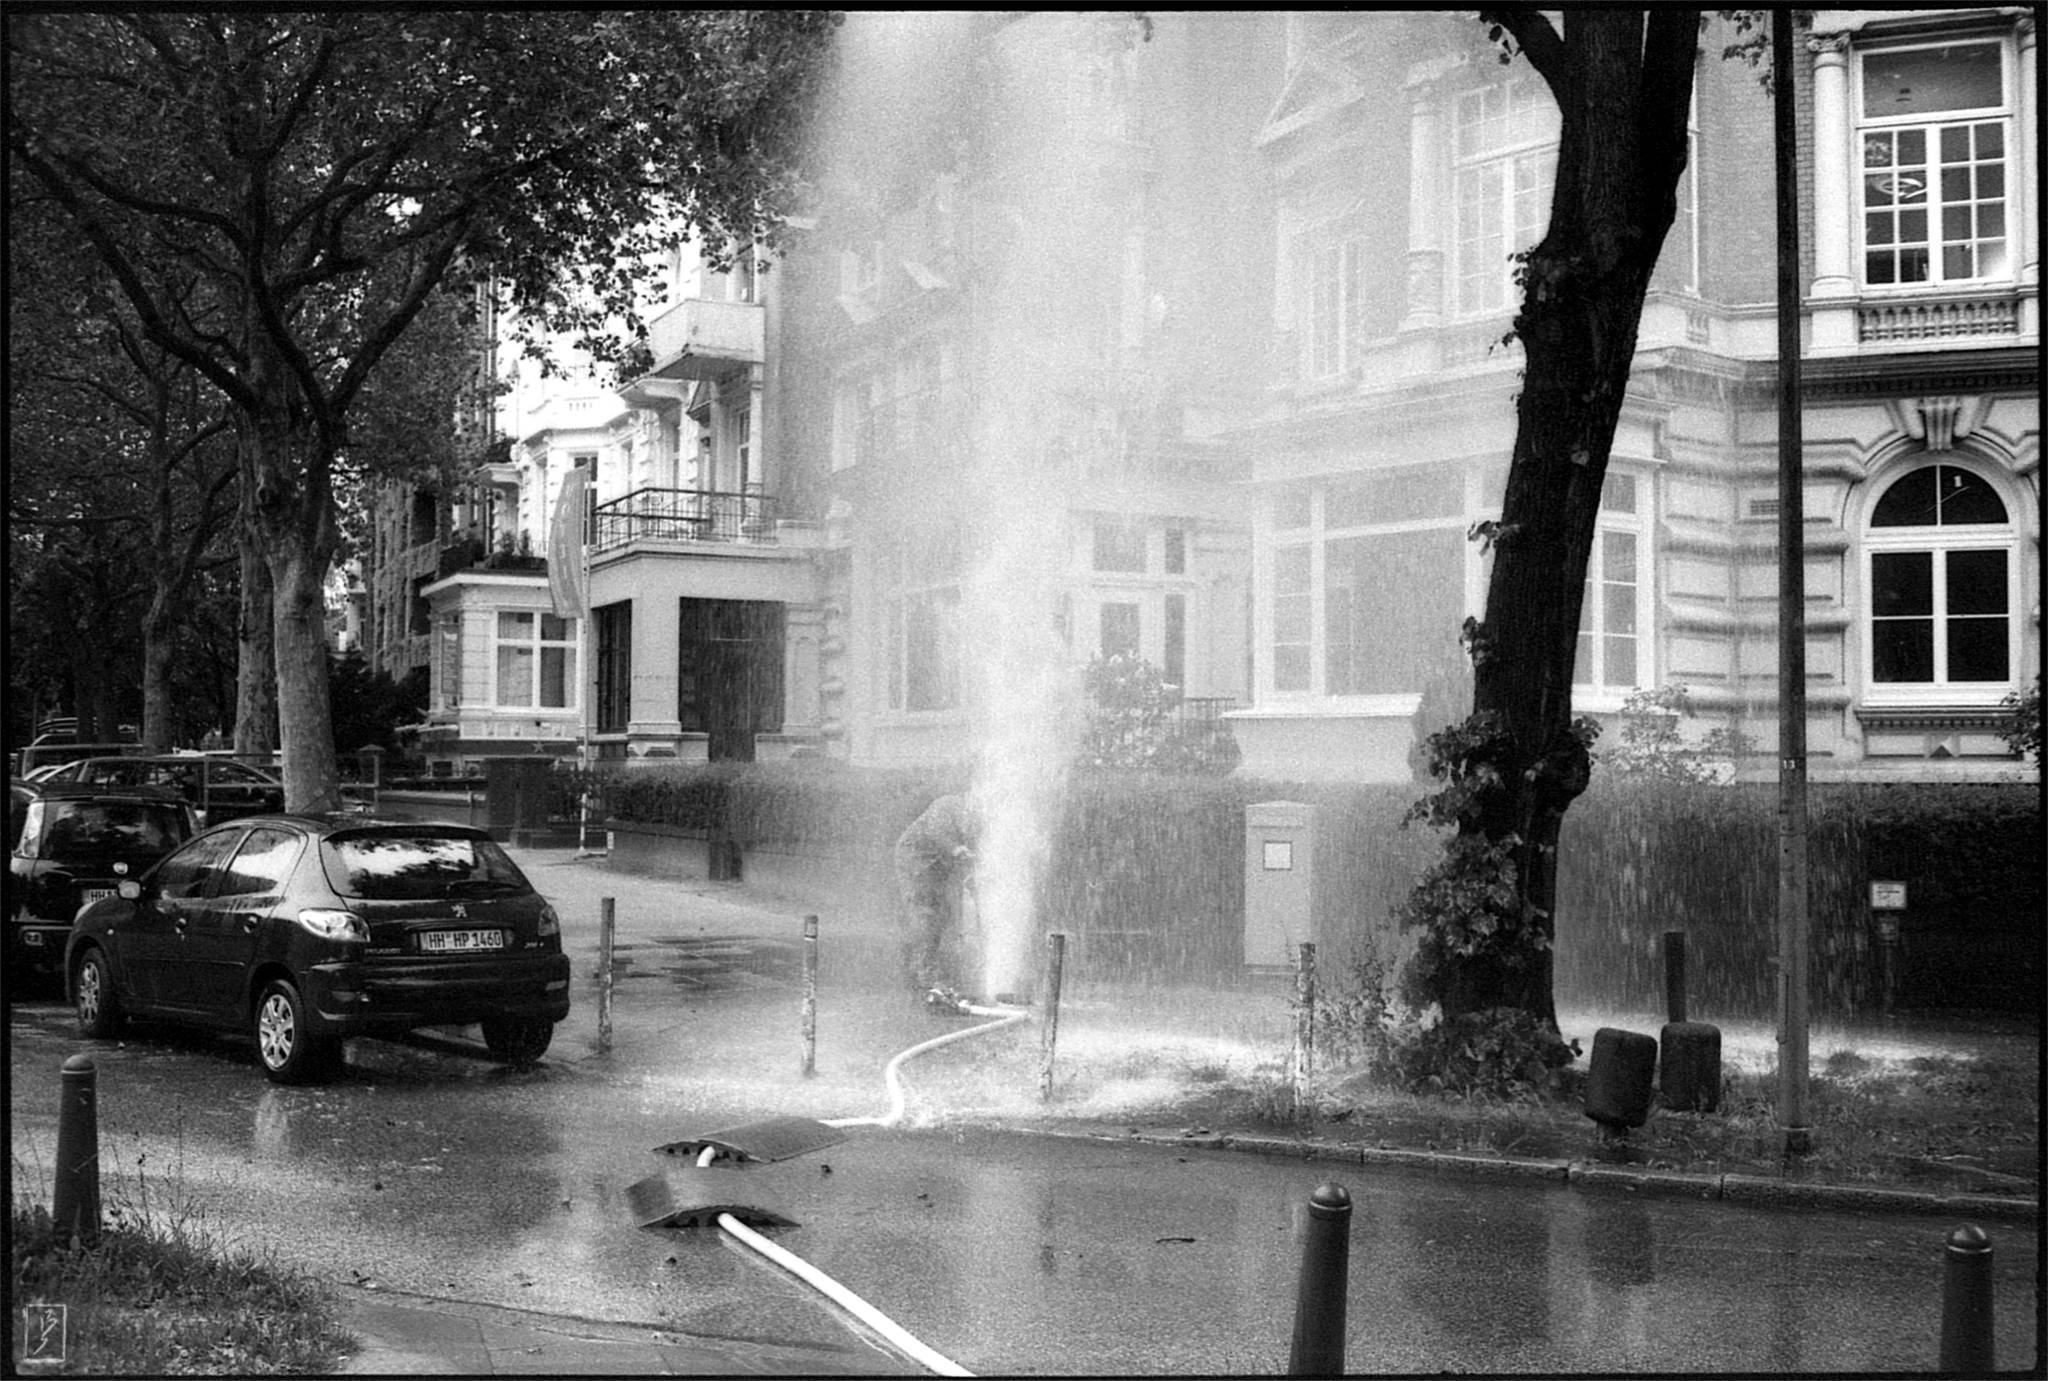 Worker trying to stop a leaking Hydrant on Schlüterstraße/Moorweidenstraße.